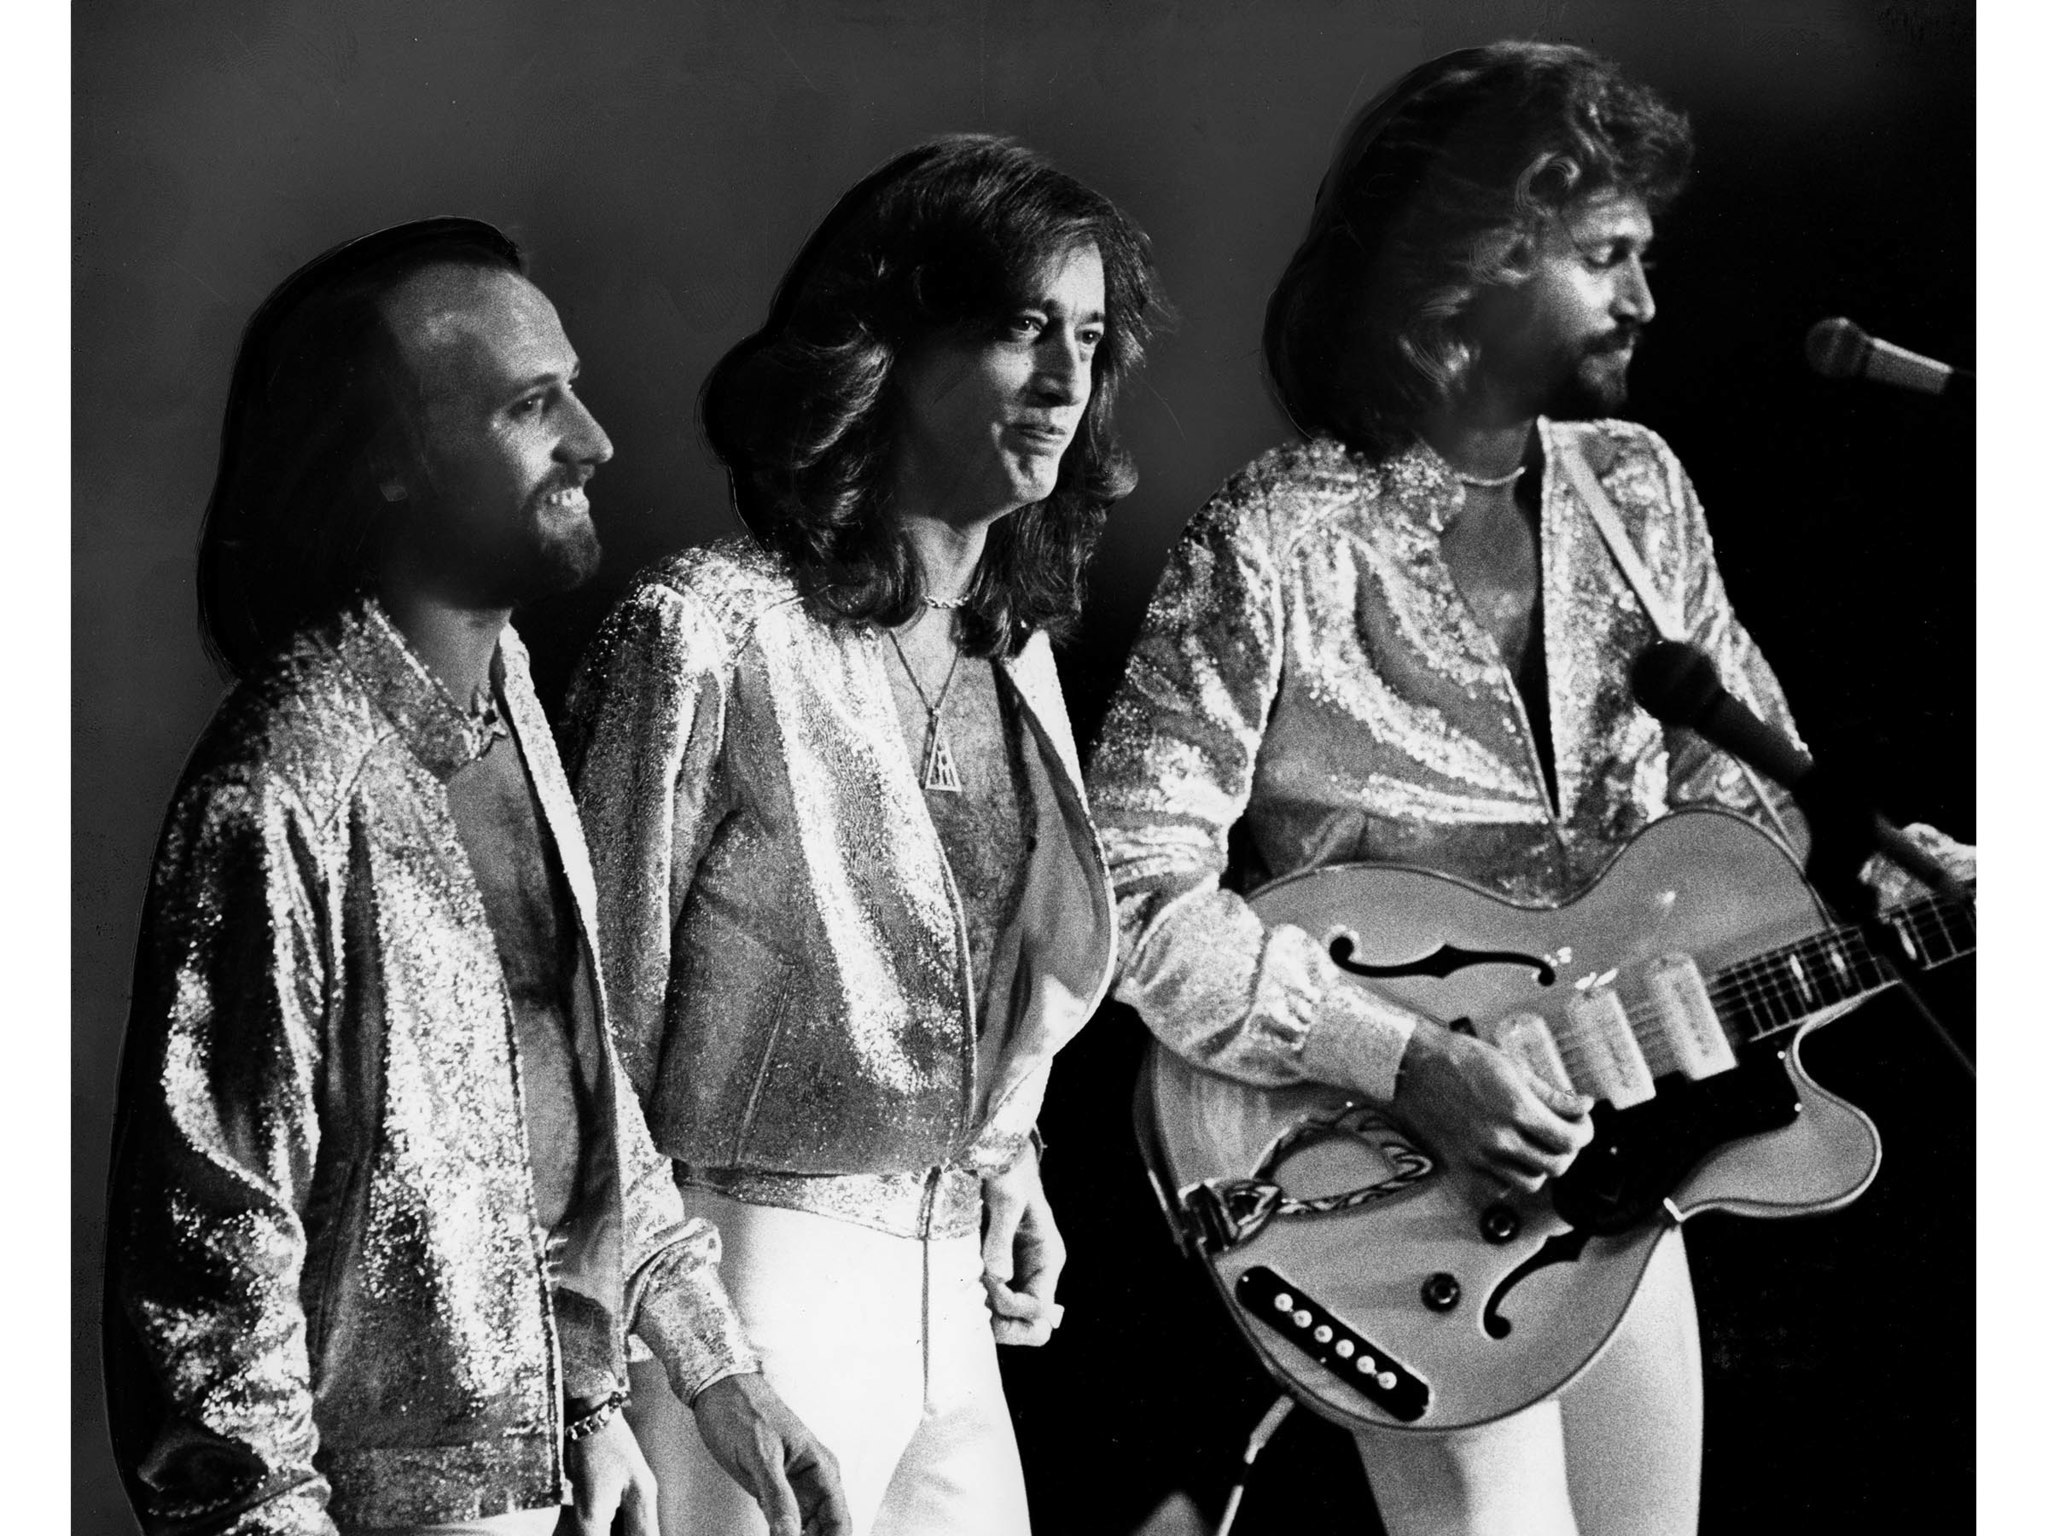 July 7, 1979: The Bee Gees – from left, Maurice, Robin, Barry Gibb – included more than a dozen